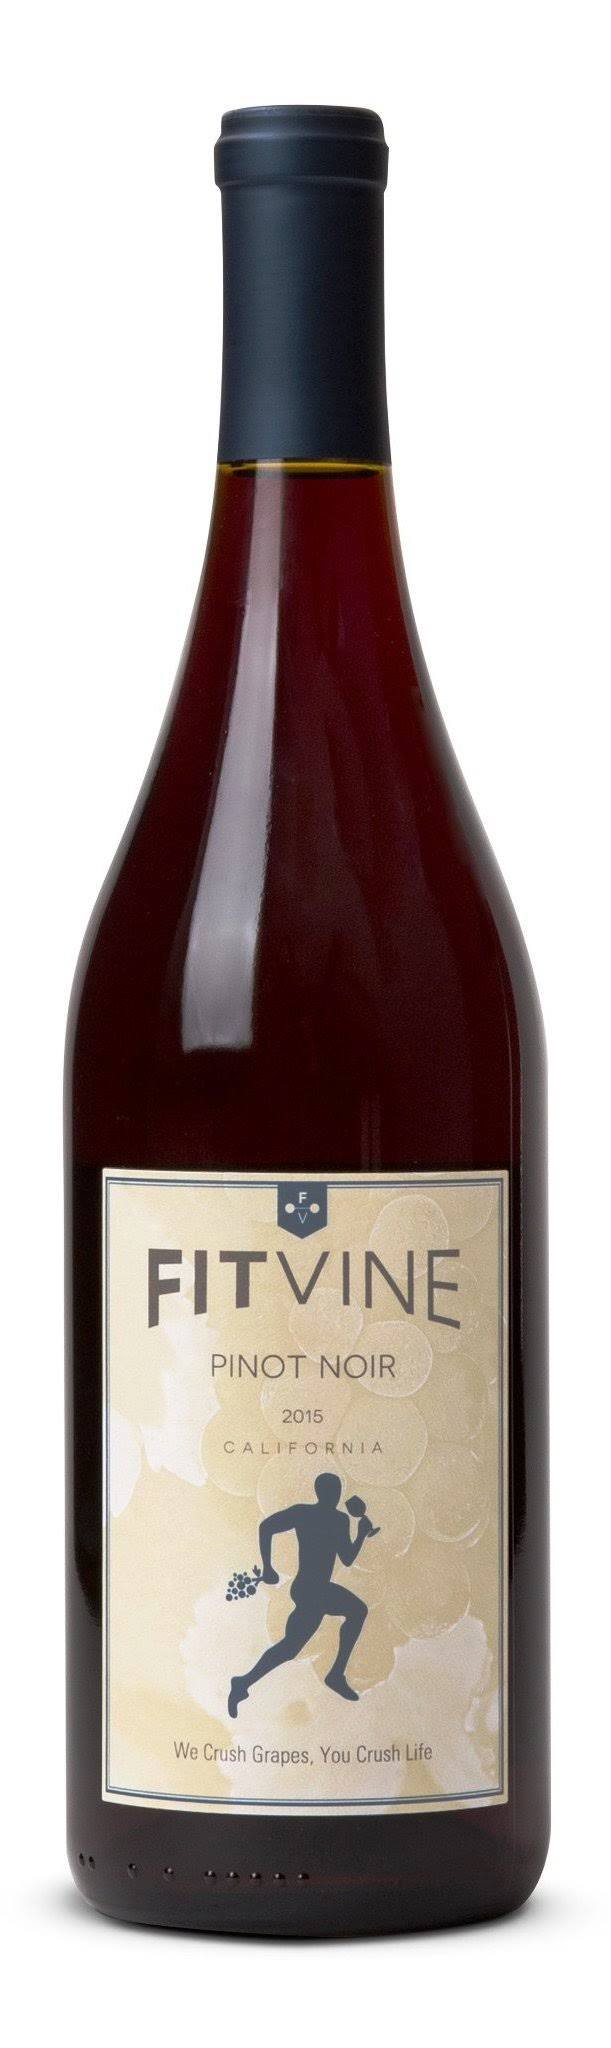 Fitvine Wine, Pinot Noir, California, 2017 - 750 ml